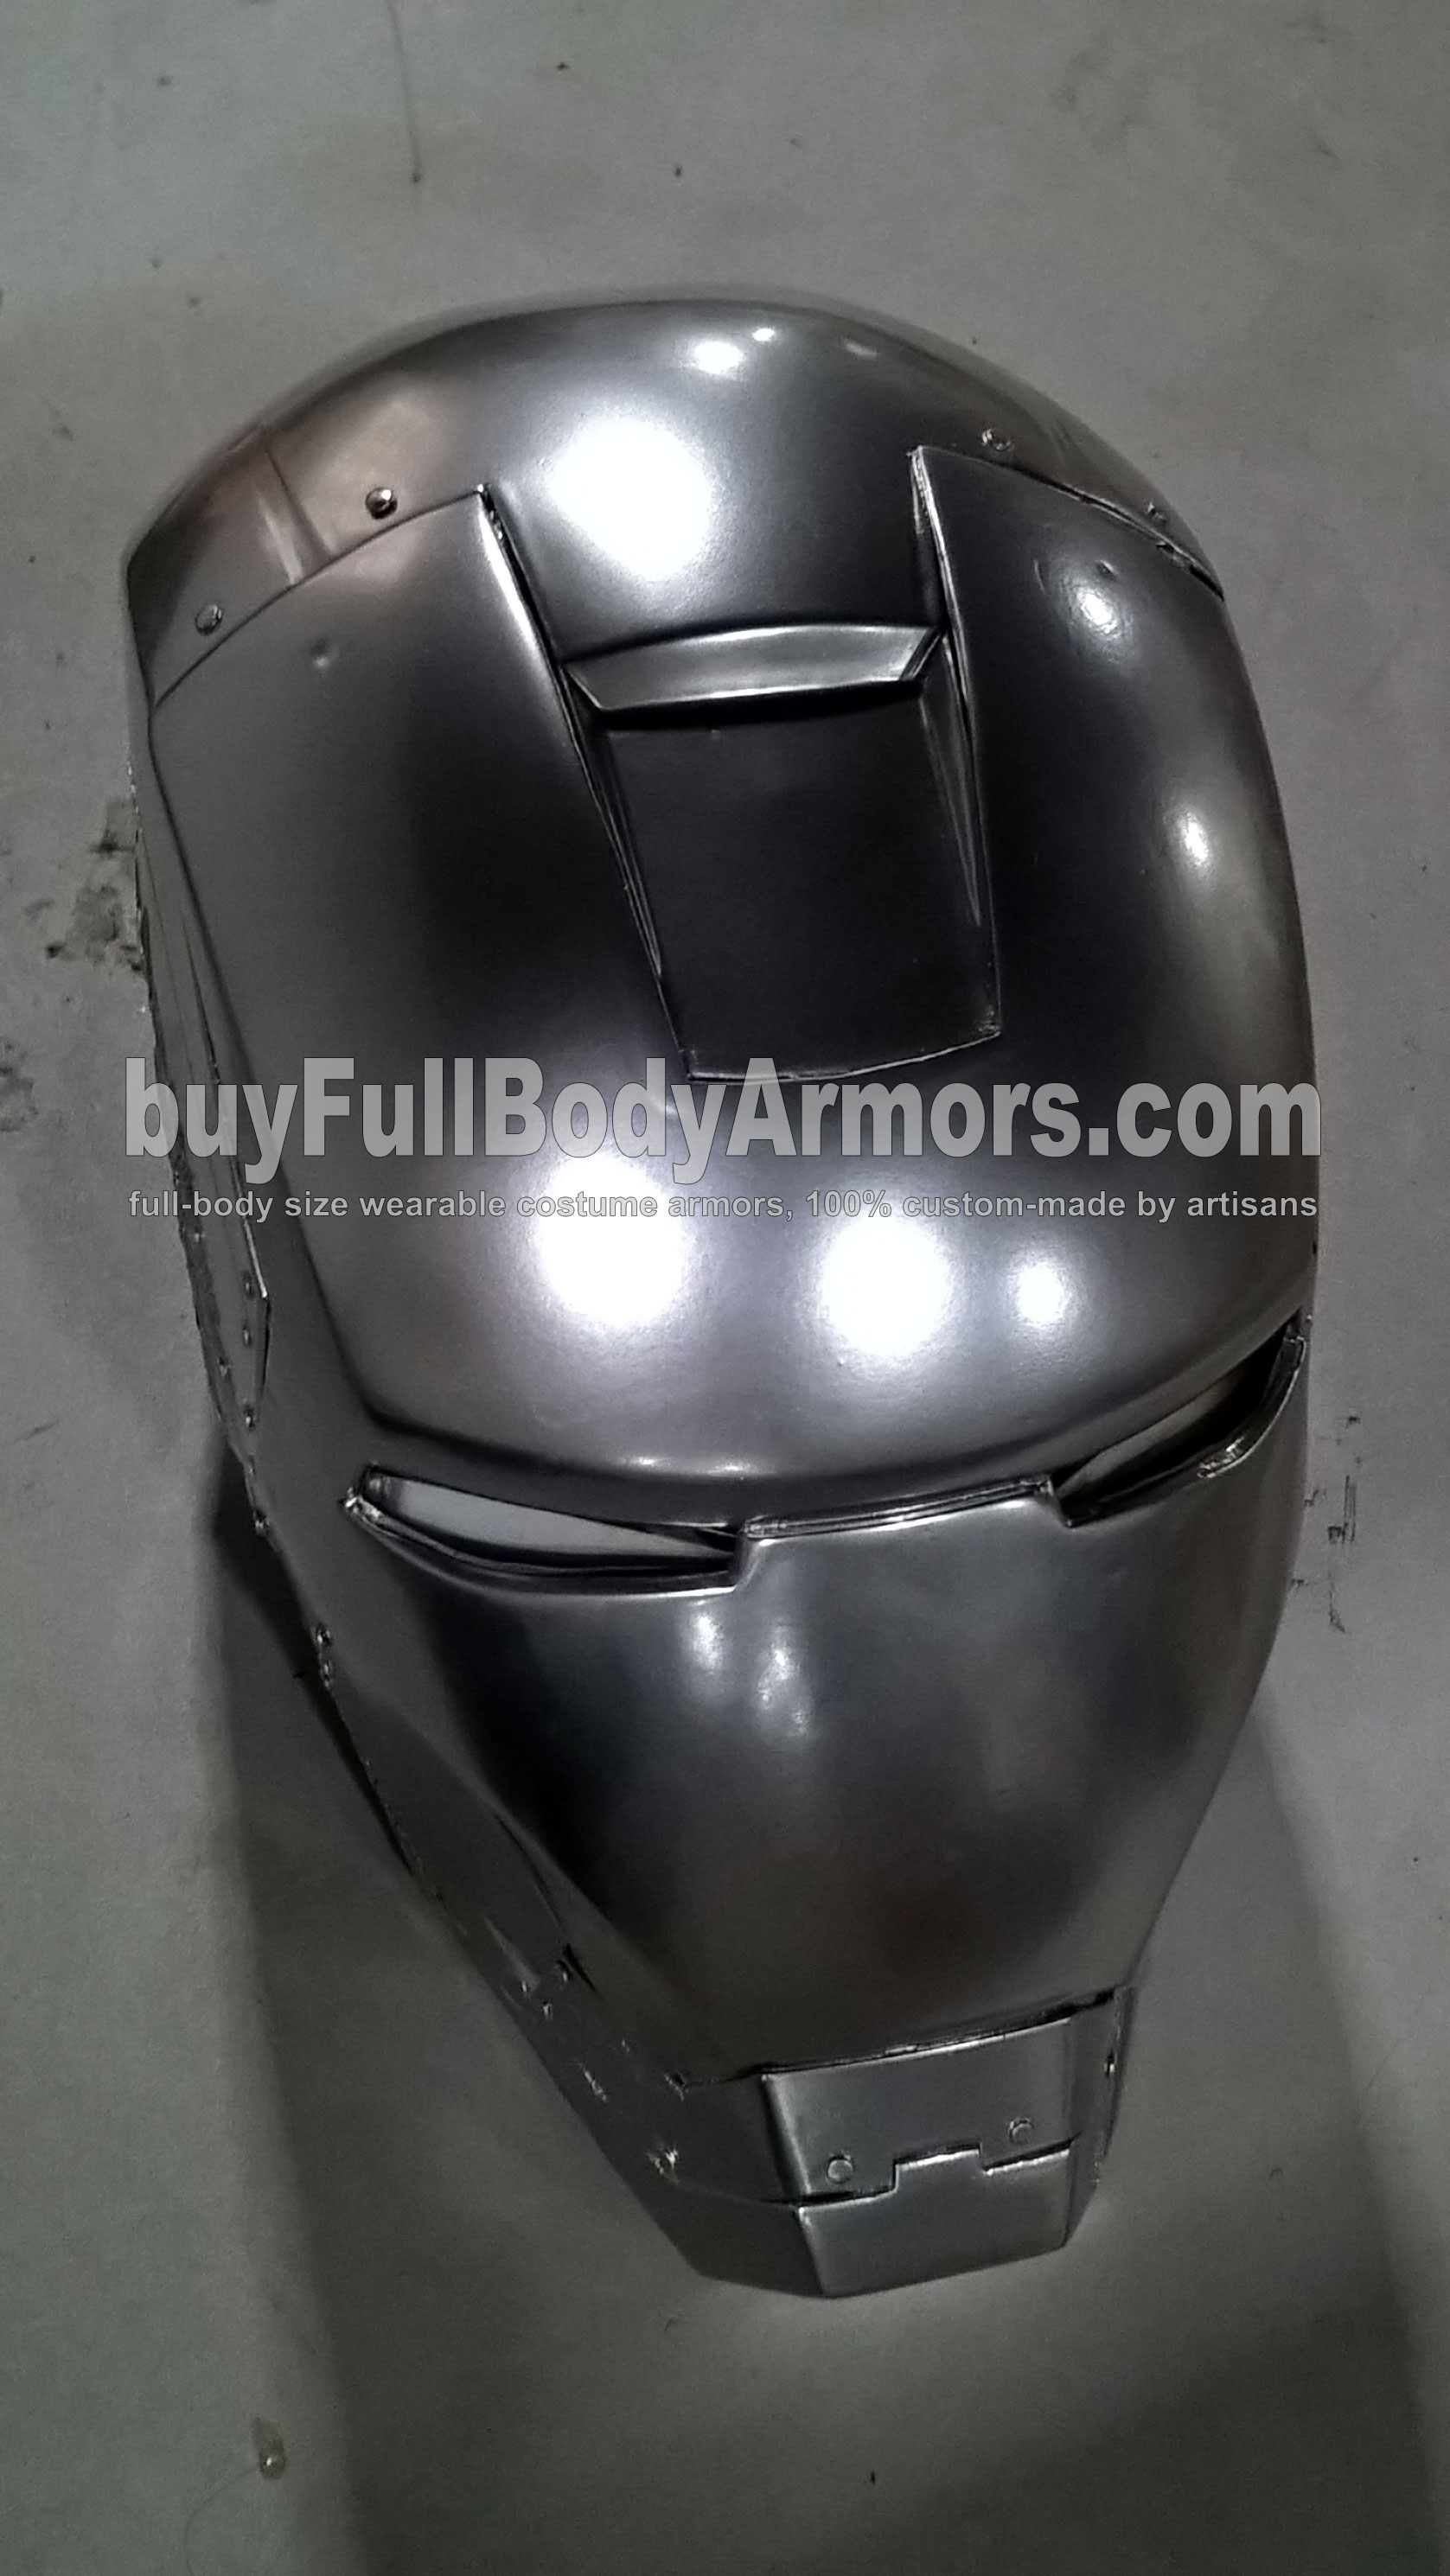 Chrome Silver Painting Effect of the Wearable Iron Man Suit Mark II (2) helmet